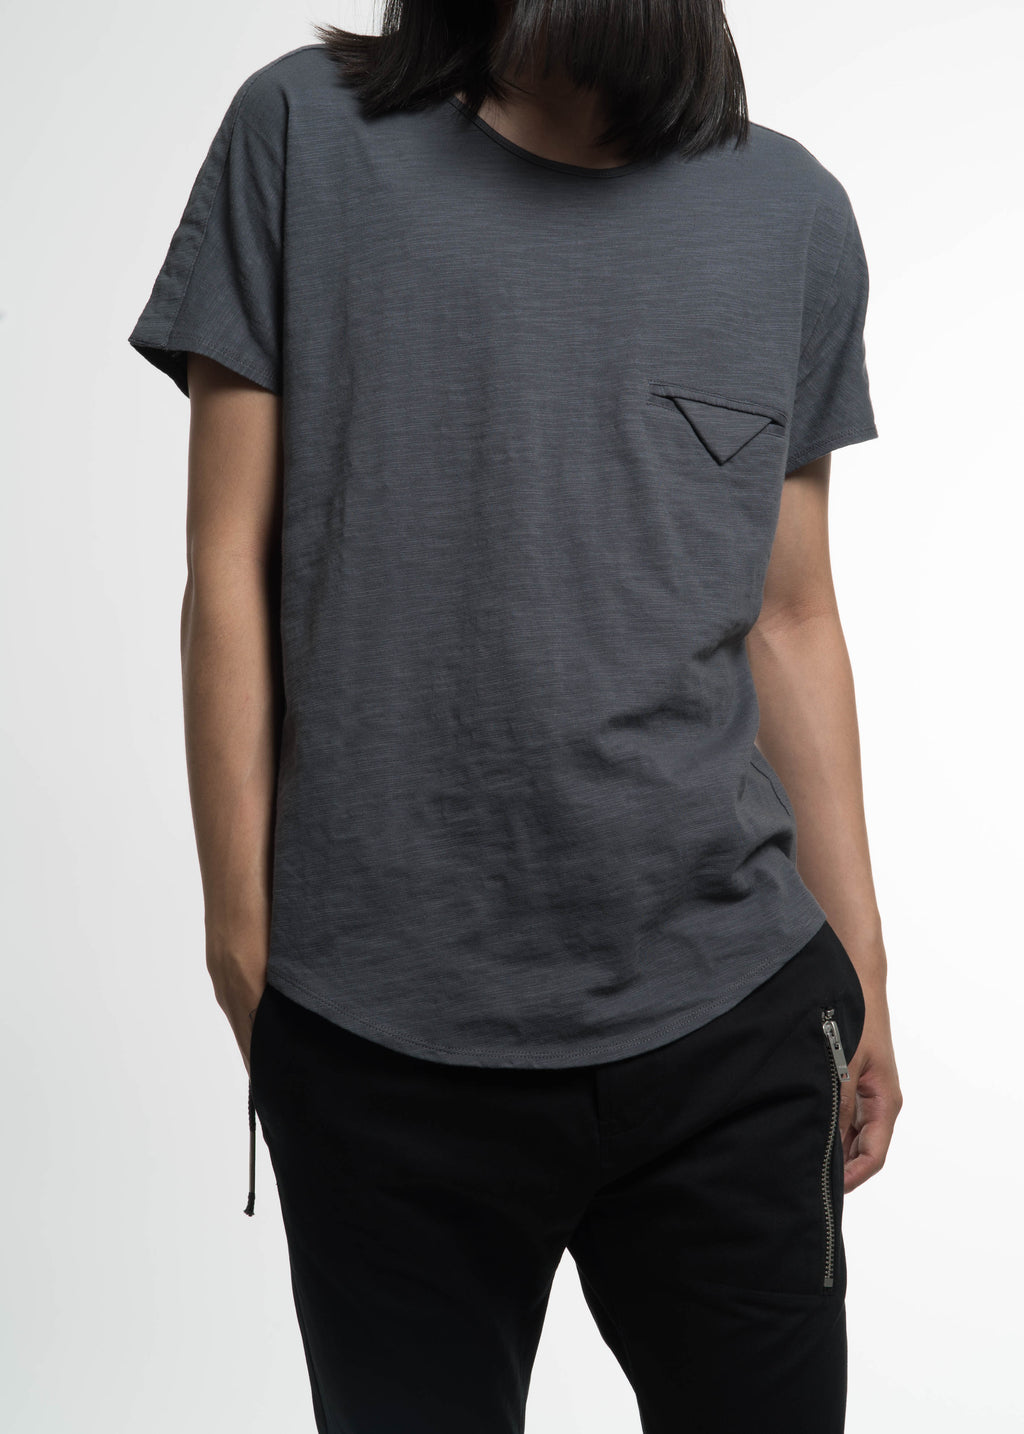 Siki Im, Grey Kimono Taped T-Shirt, 017 Shop